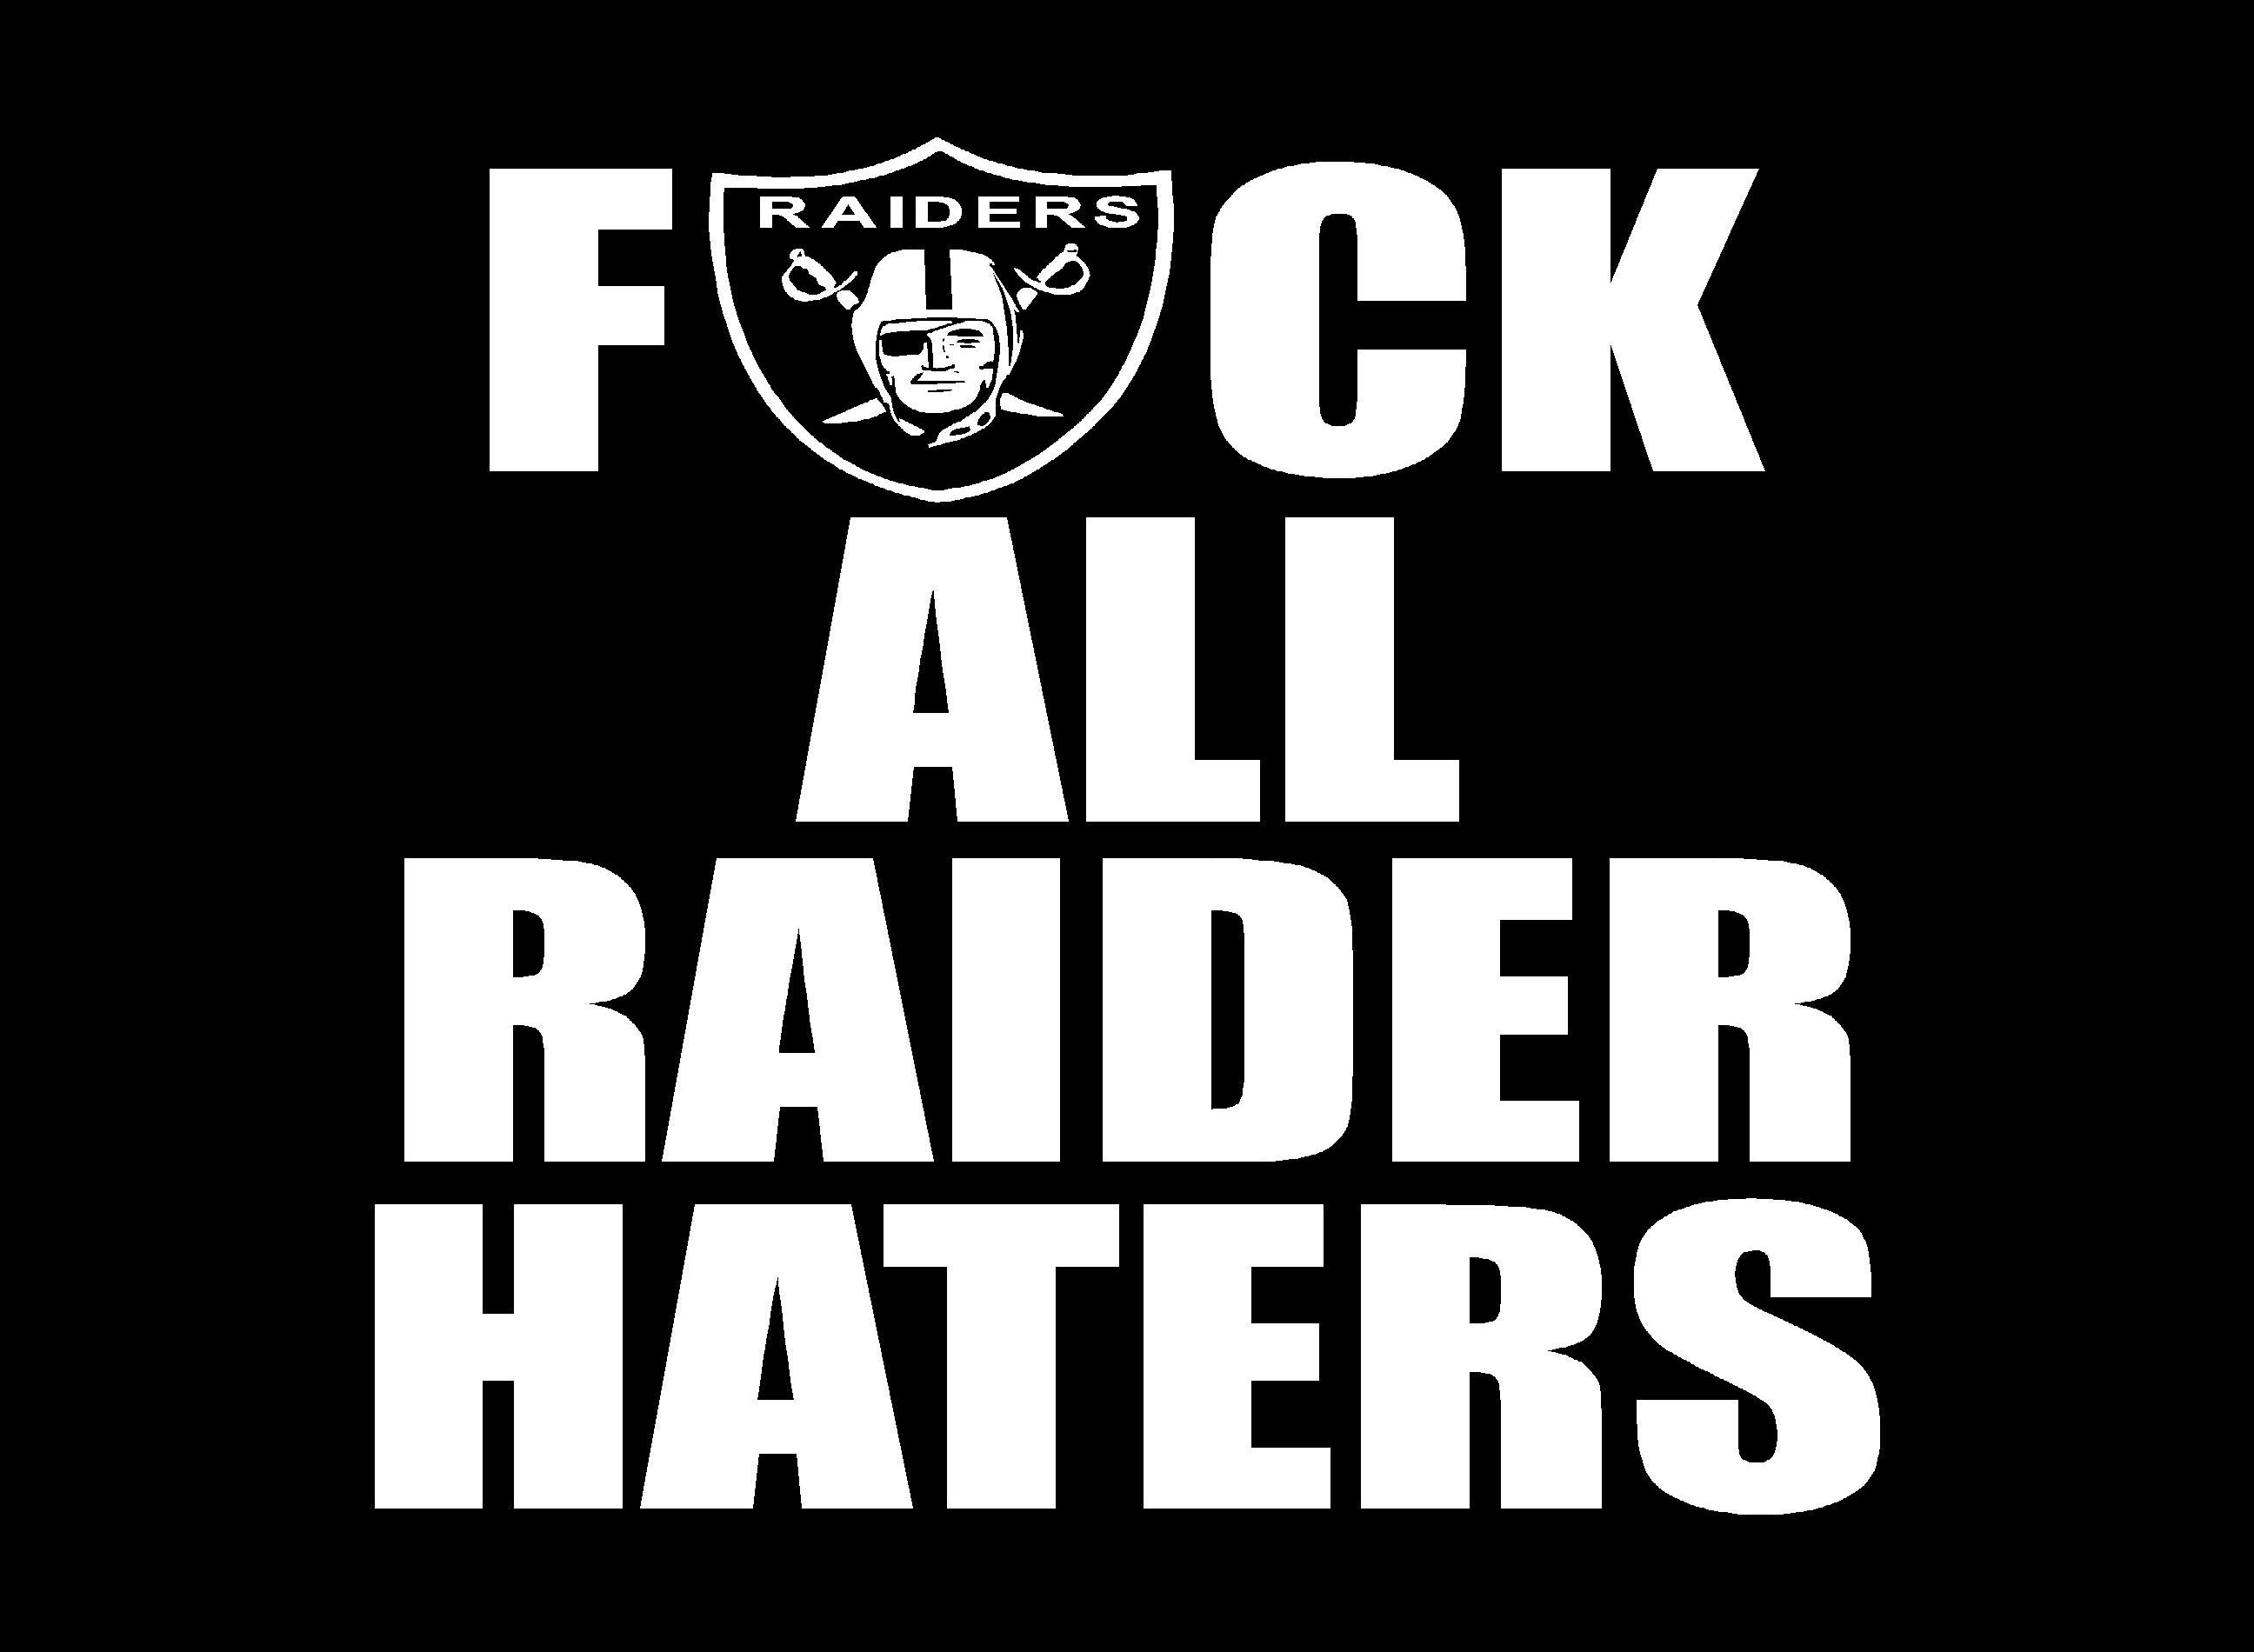 2592x1900 oakland raiders wallpaper | OAKLAND RAIDERS nfl football sadic fh wallpaper  |  | 156342 .